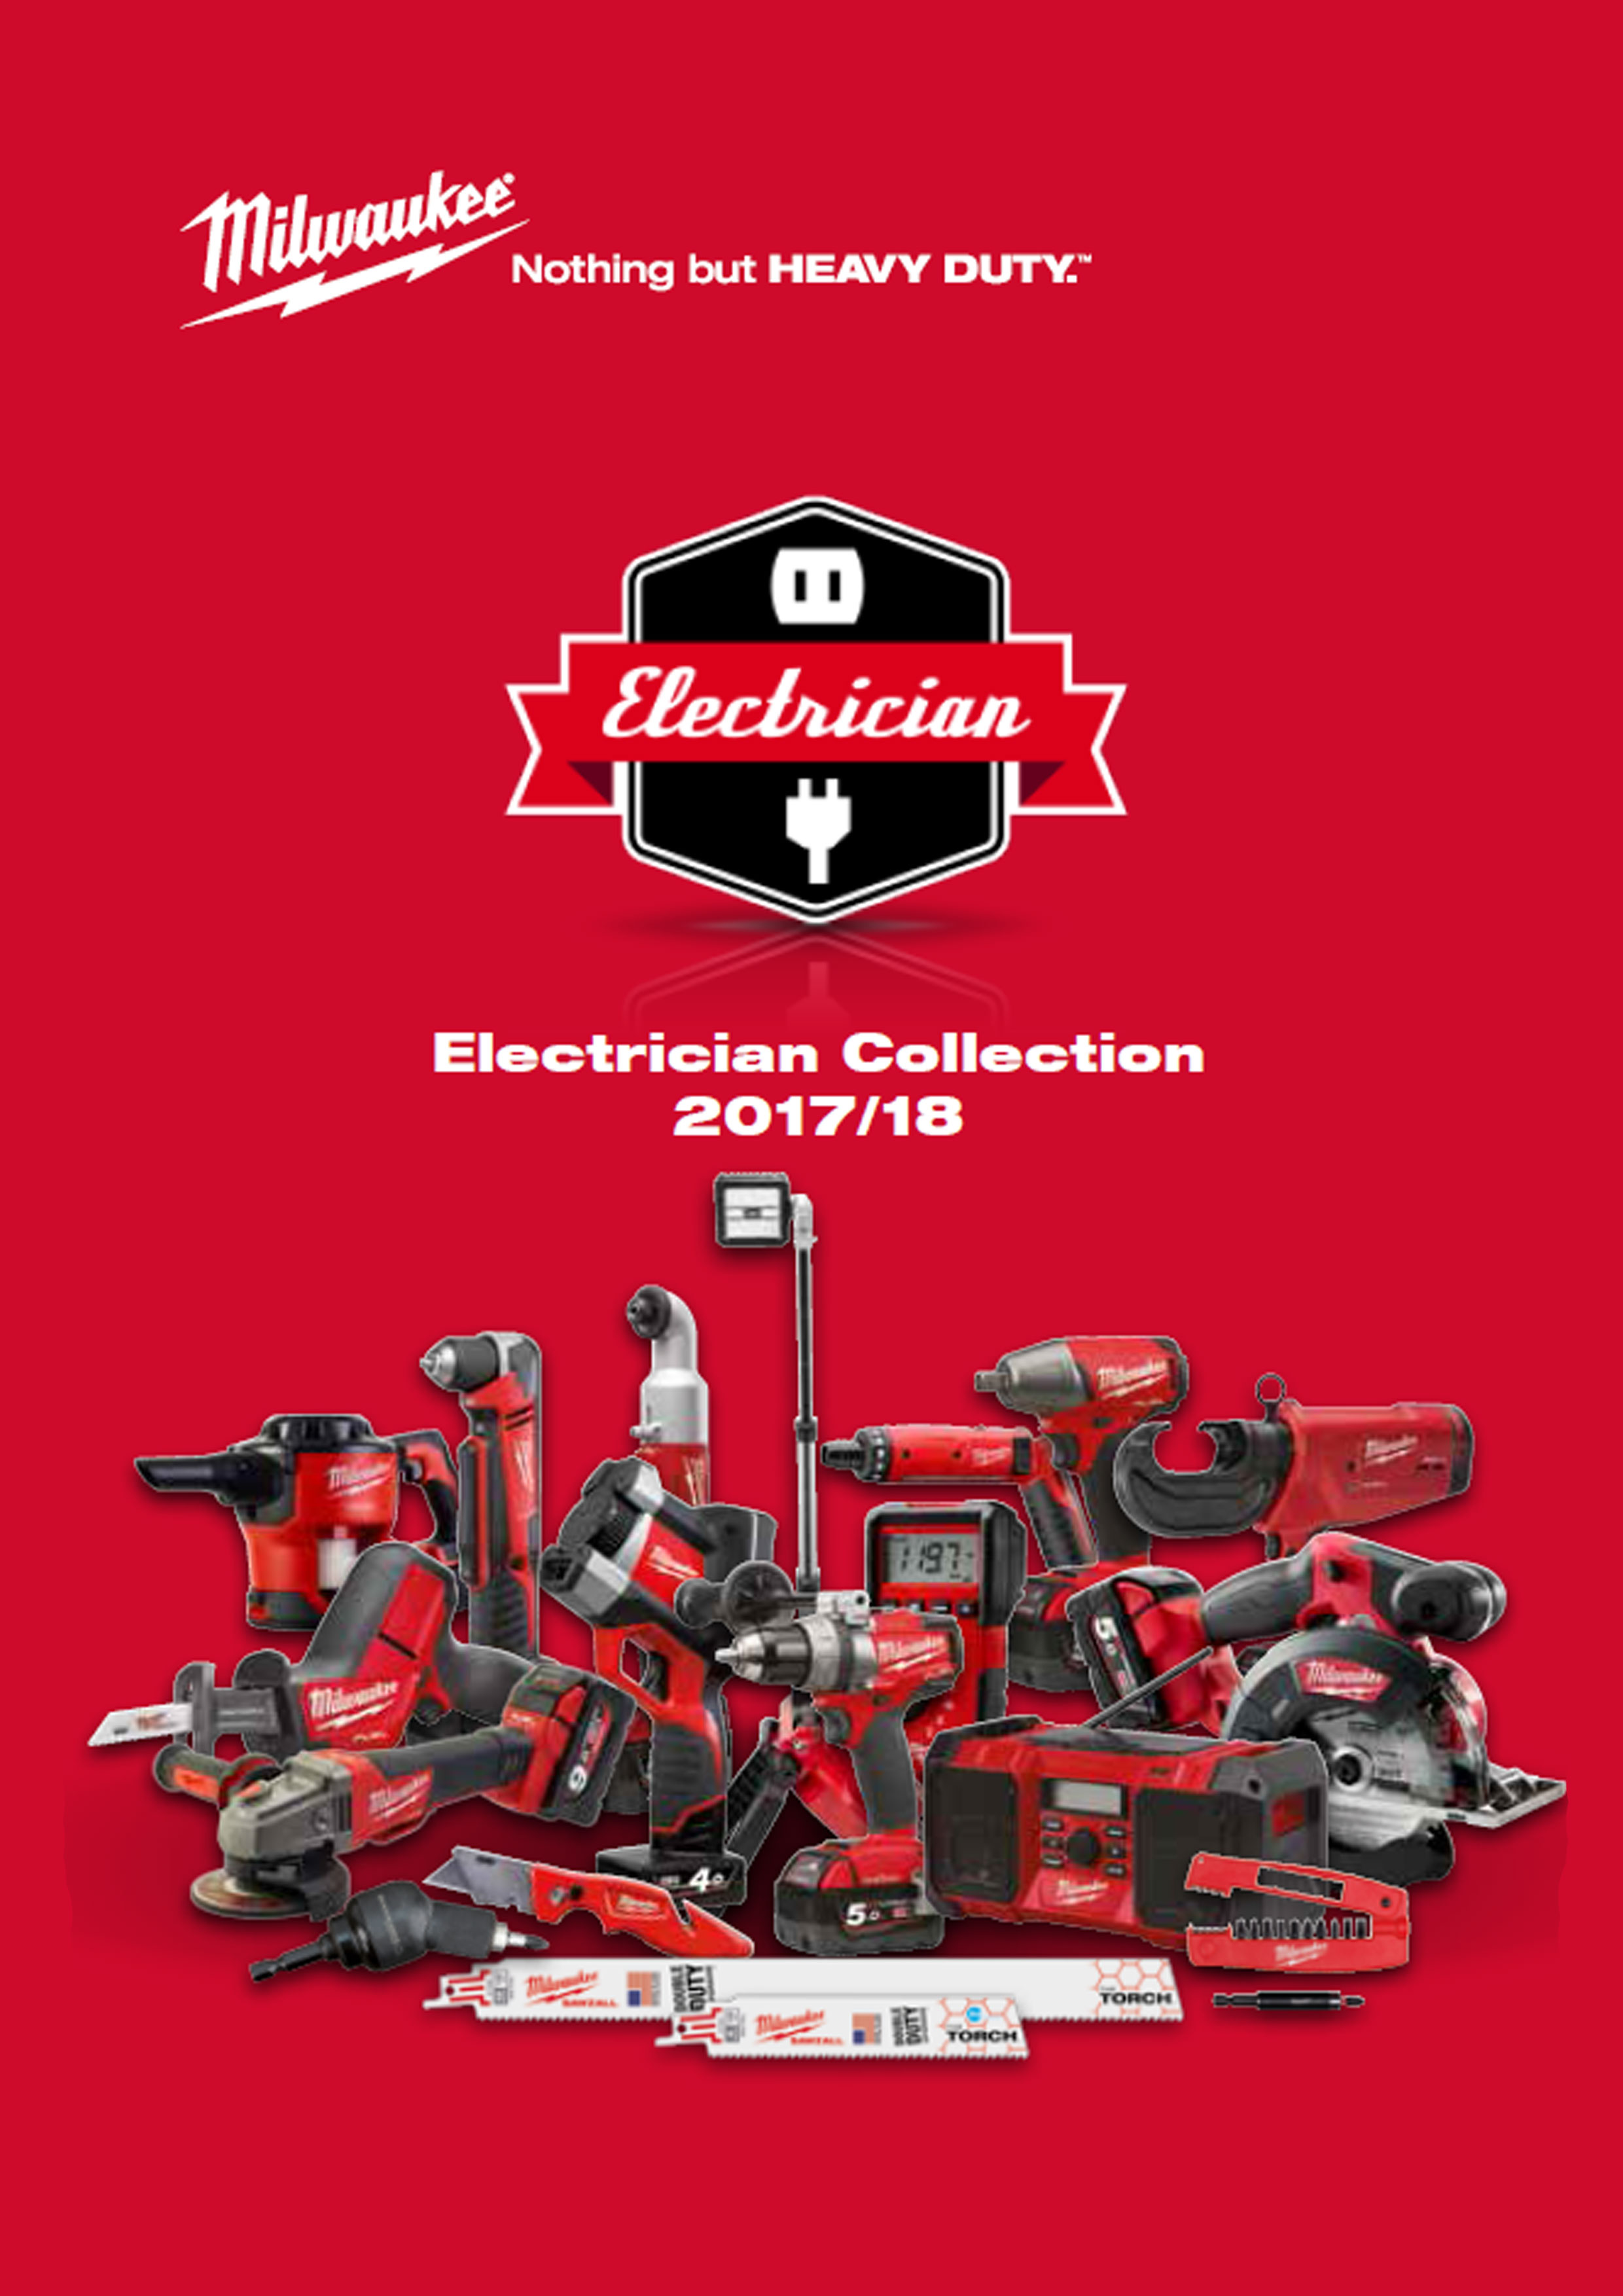 Electrician Collection 2017/18